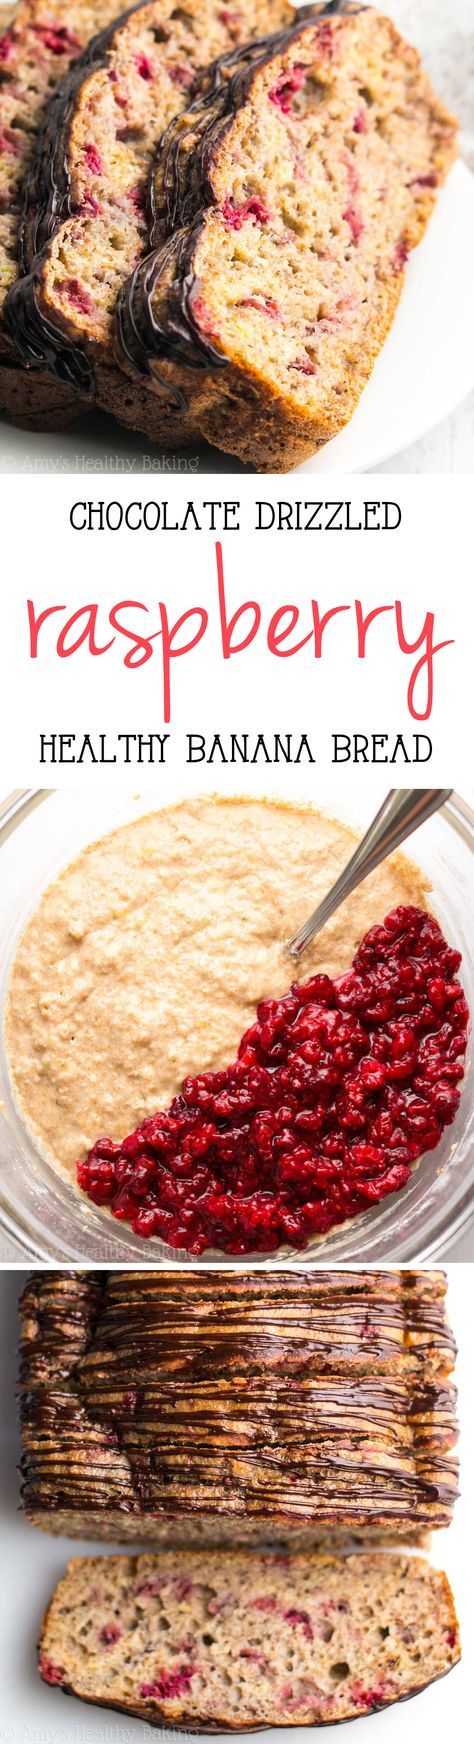 Chocolate Drizzled Raspberry Banana Bread -- this healthy breakfast recipe tastes like dessert! Just 118 calories & full of fruit!